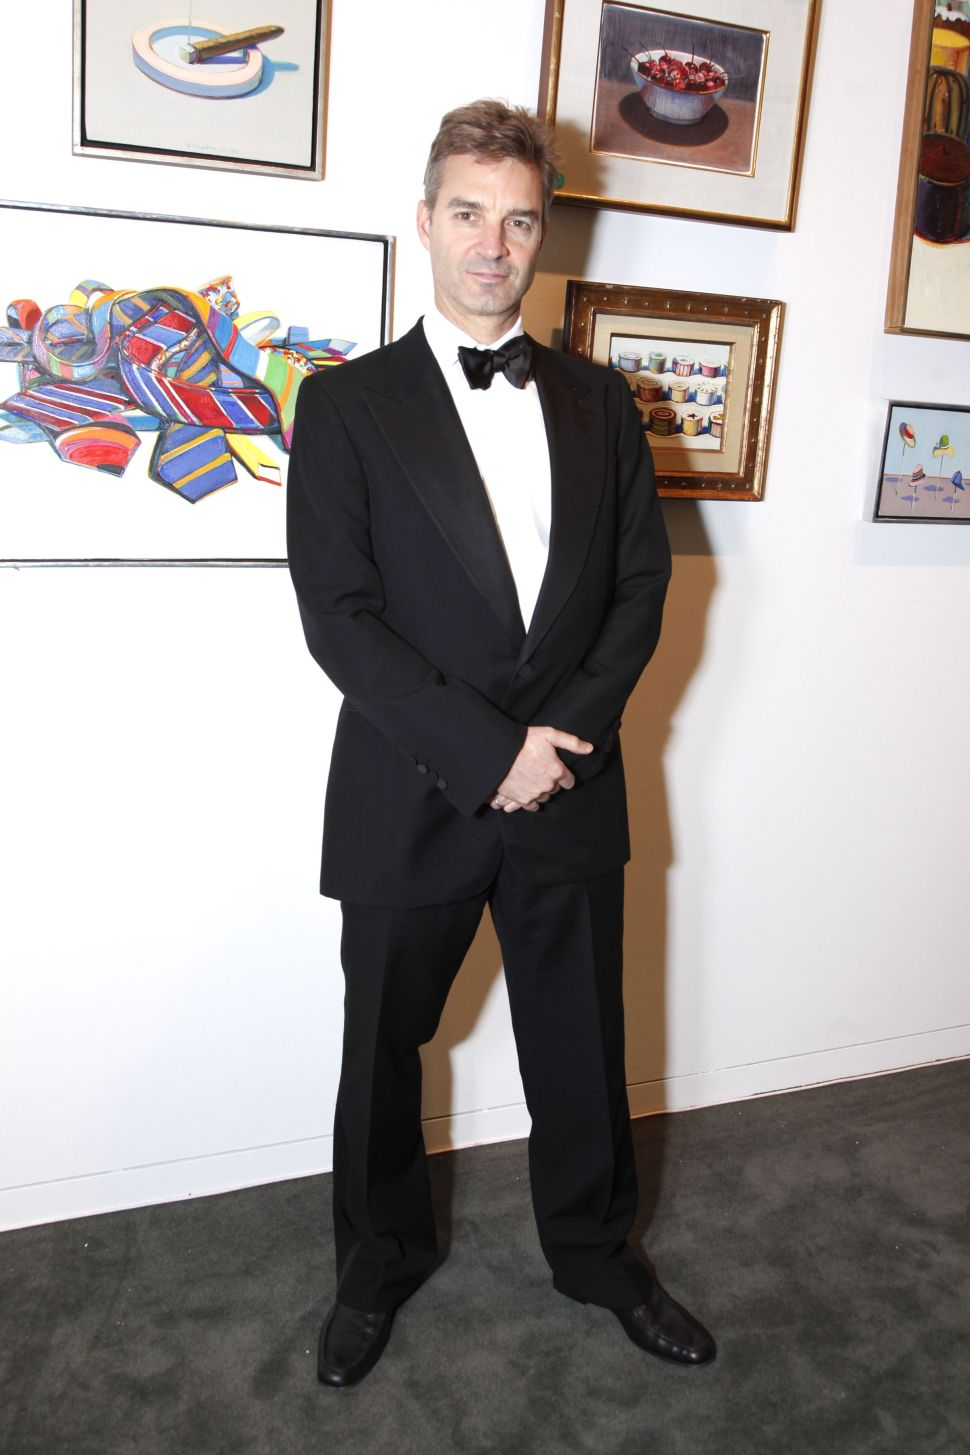 Daniel Loeb Calls for Sotheby's CEO to Resign